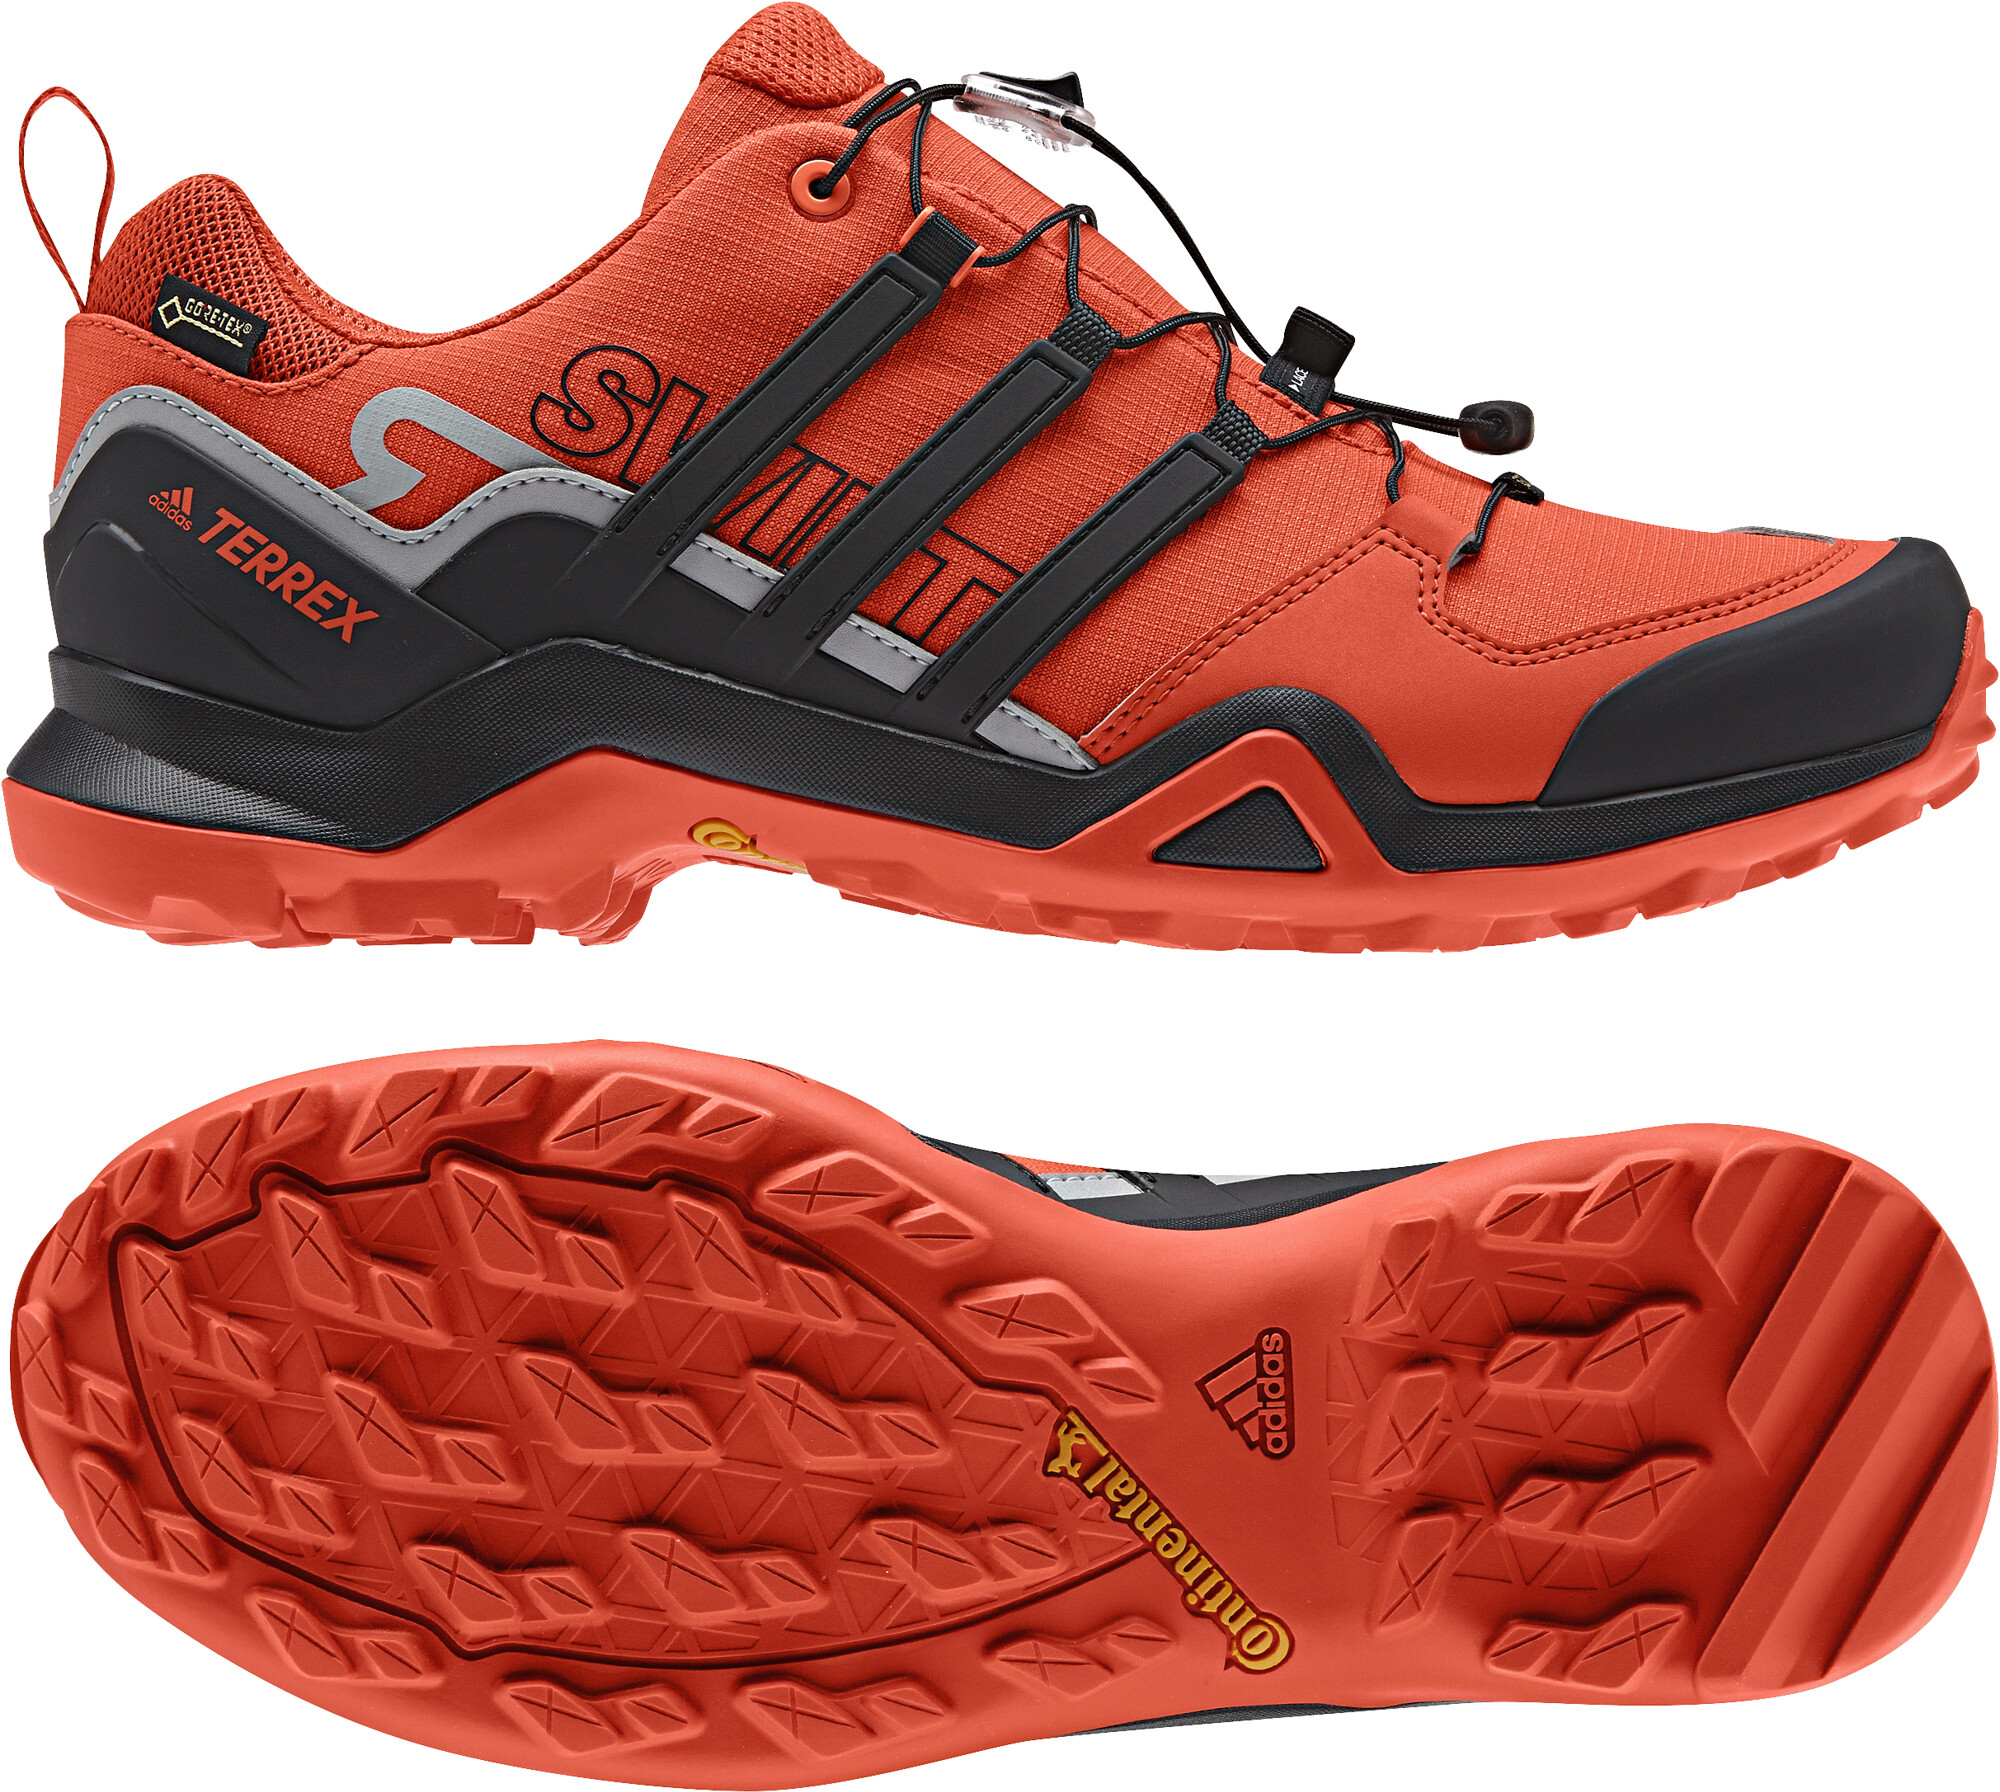 adidas TERREX Swift R2 GTX Shoes Men orange black at Addnature.co.uk 4fa245b71